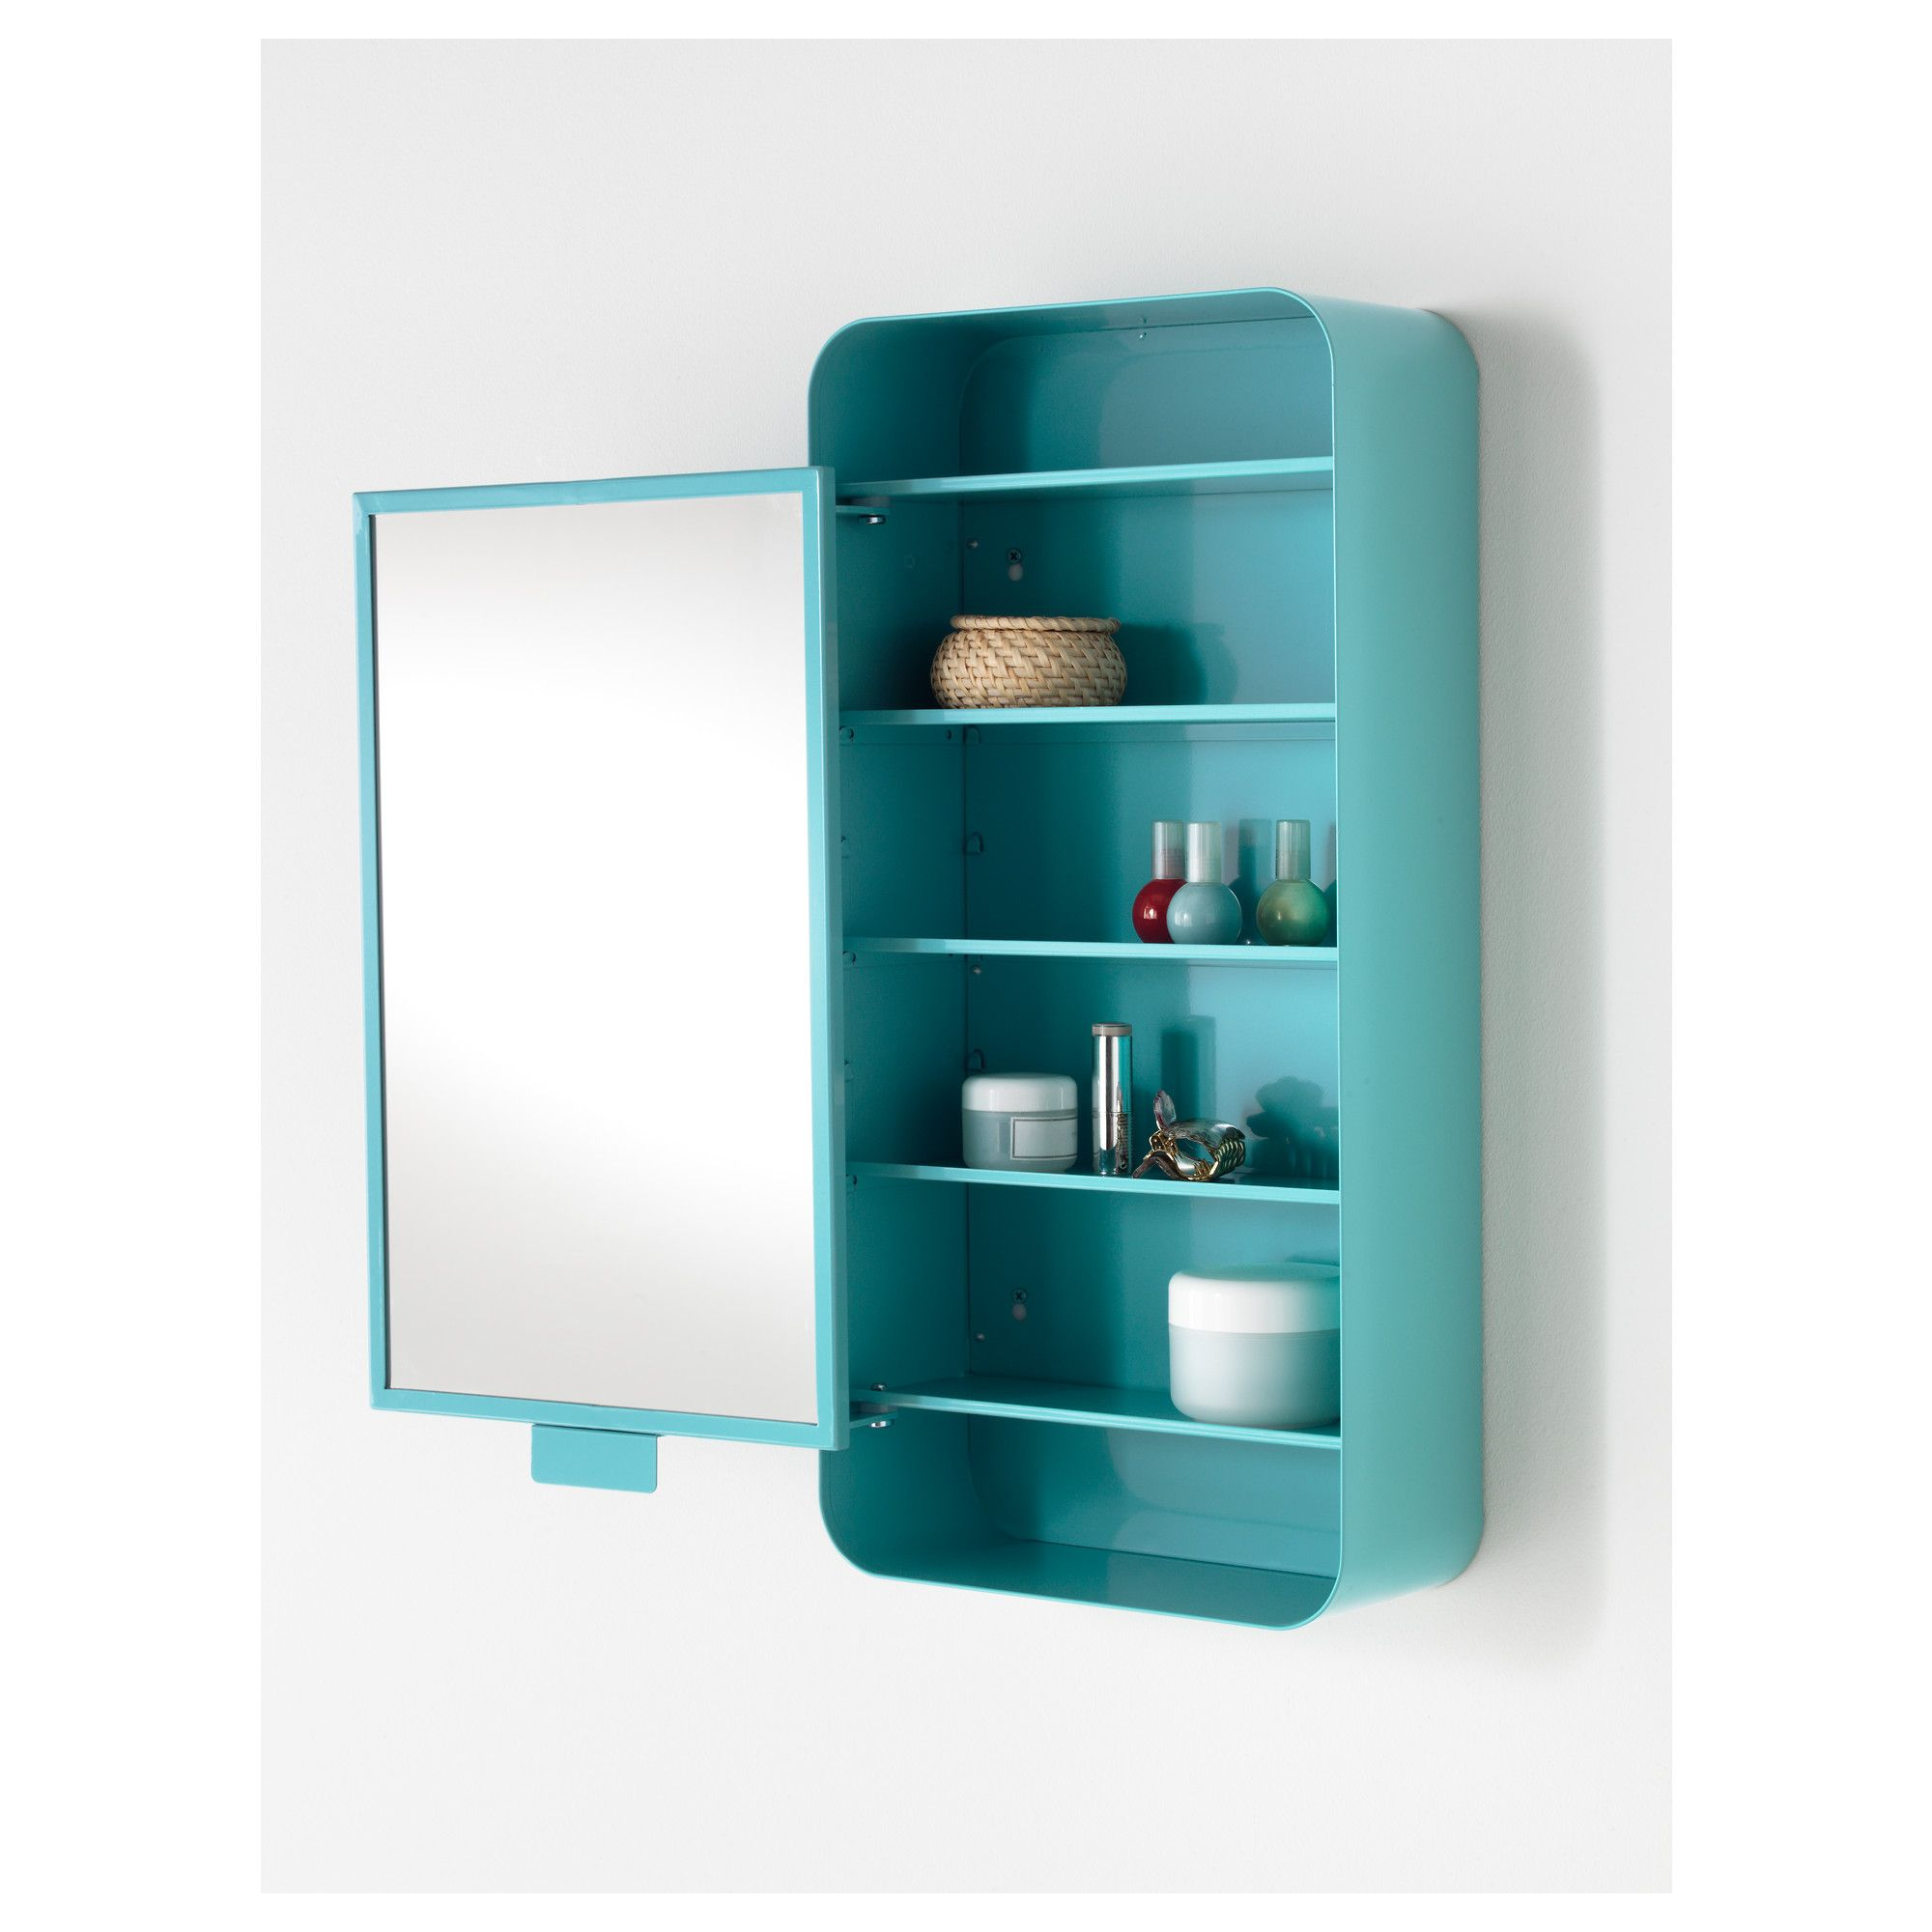 Ikea  Gunnern, Mirror Cabinet With 1 Door, Turquoise , Shelves With Raised  Edge For Safe Storagee Mirrores With Safety Film On The Back,